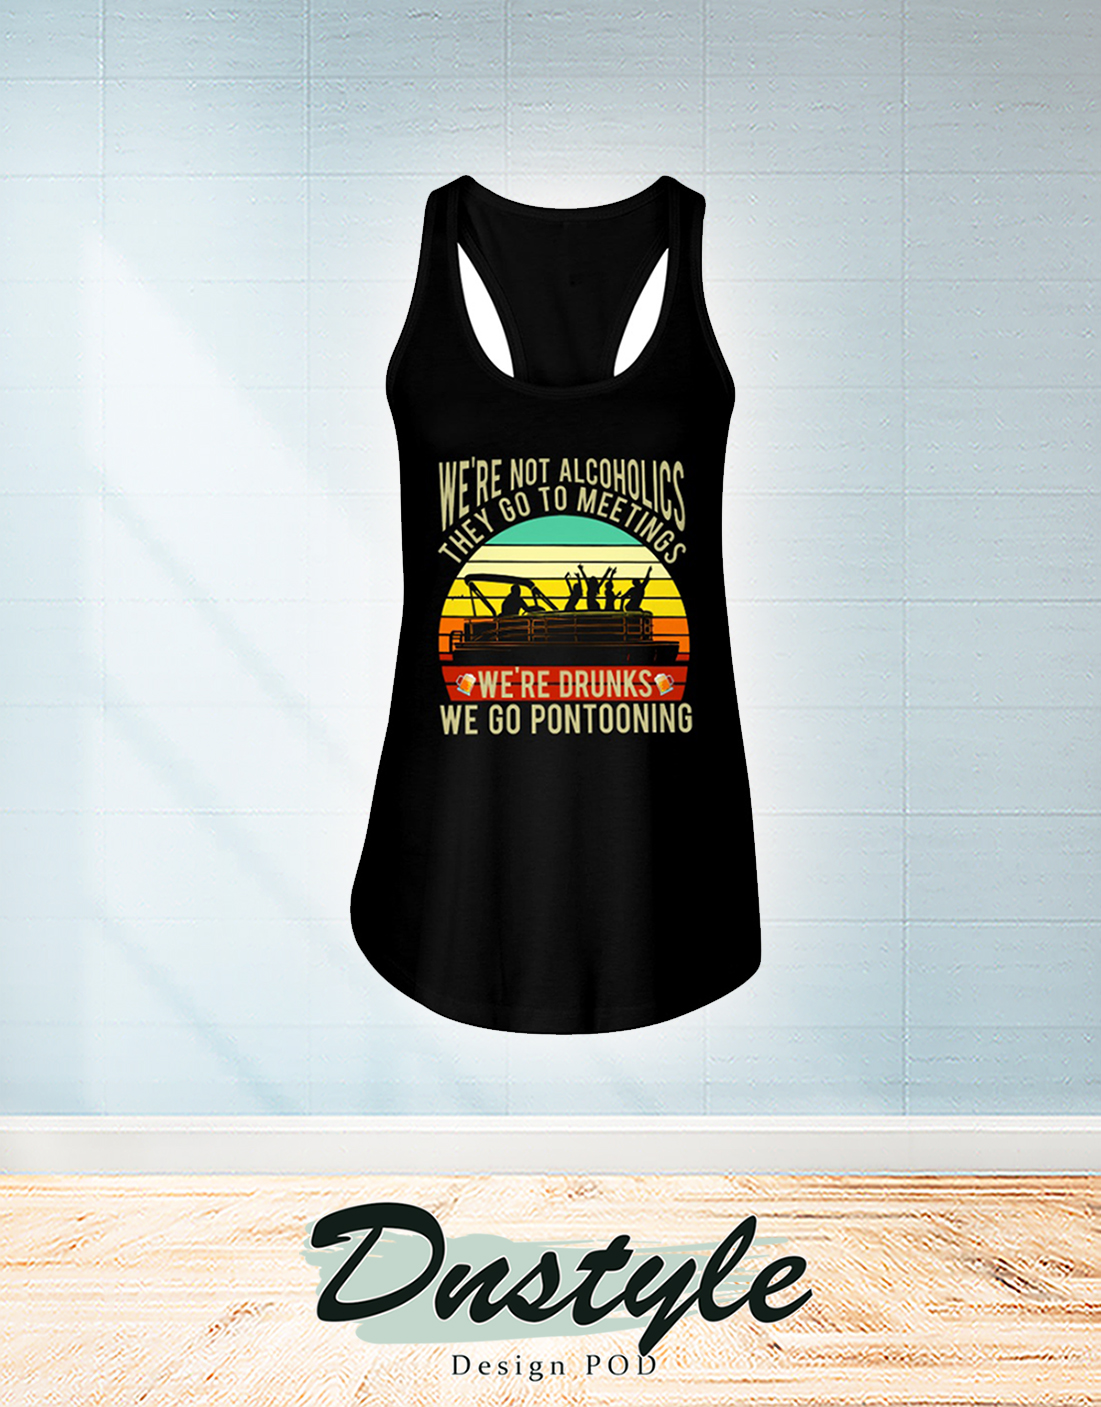 Vintage Boating we're not alcoholics they go to meetings flowy tank